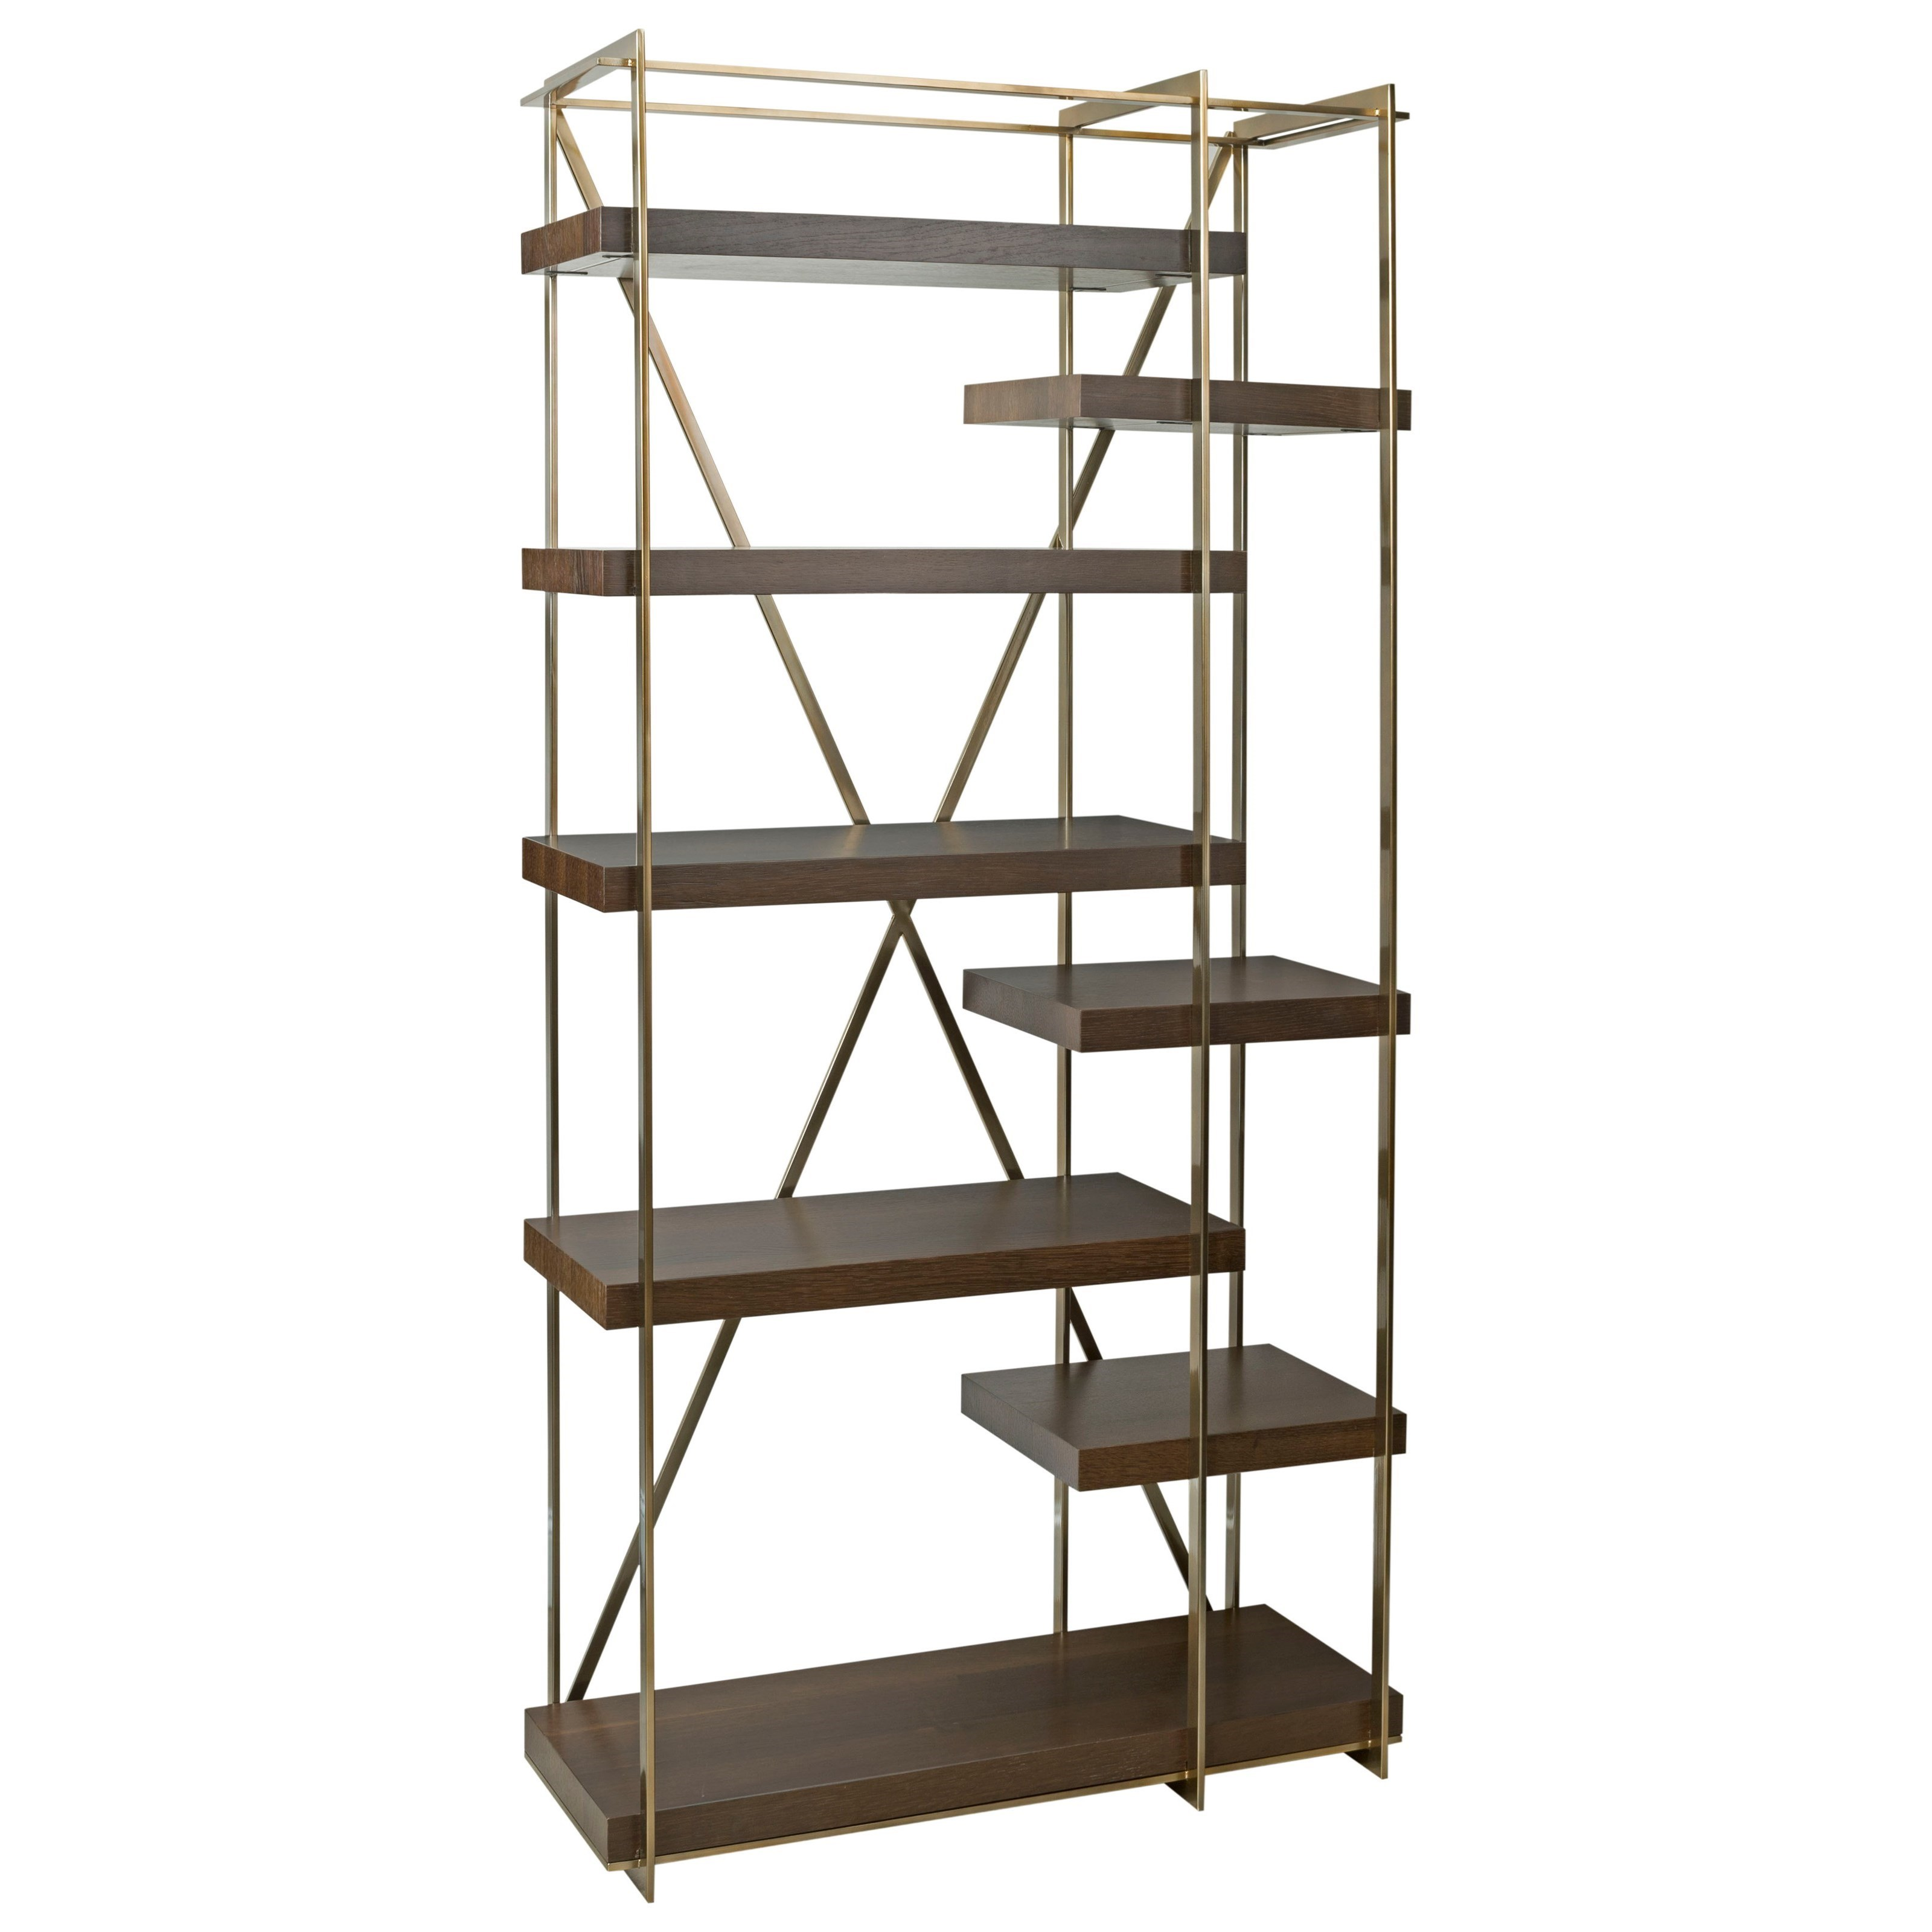 American Drew Ad Modern Organics Cowley Etagere - Item Number: 600-939